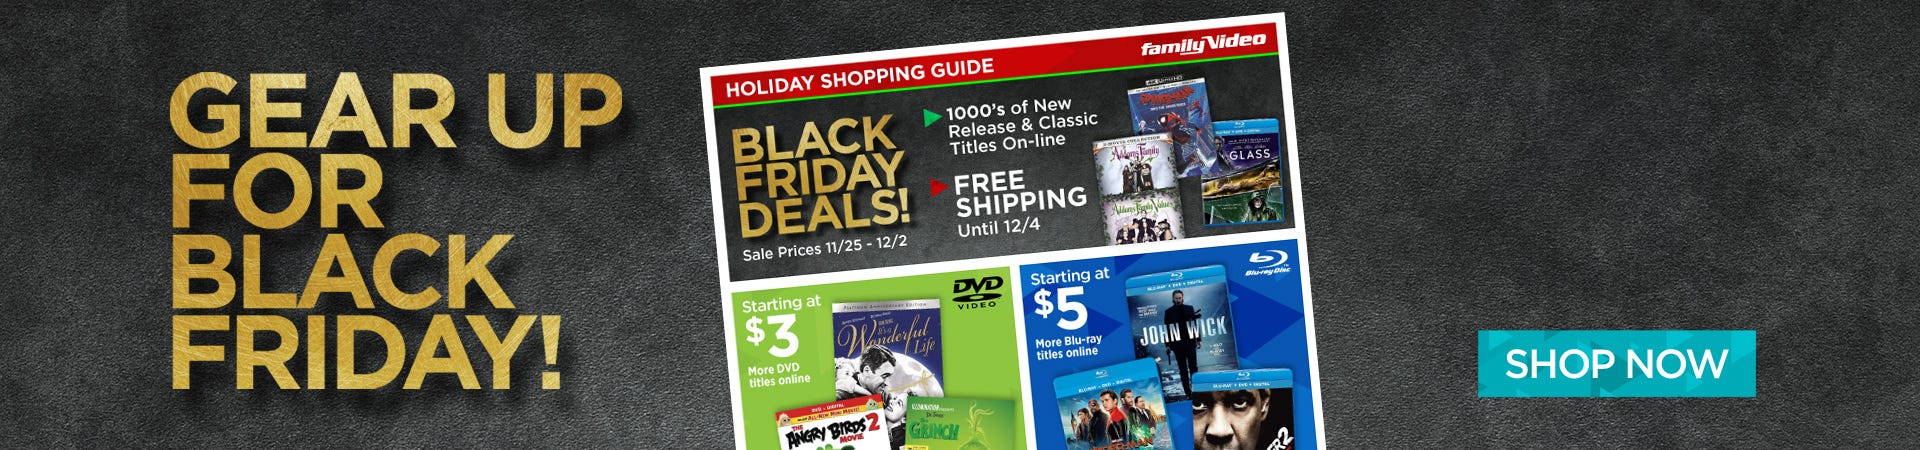 Browse Our Preview Ad For Upcoming Black Friday Deals!